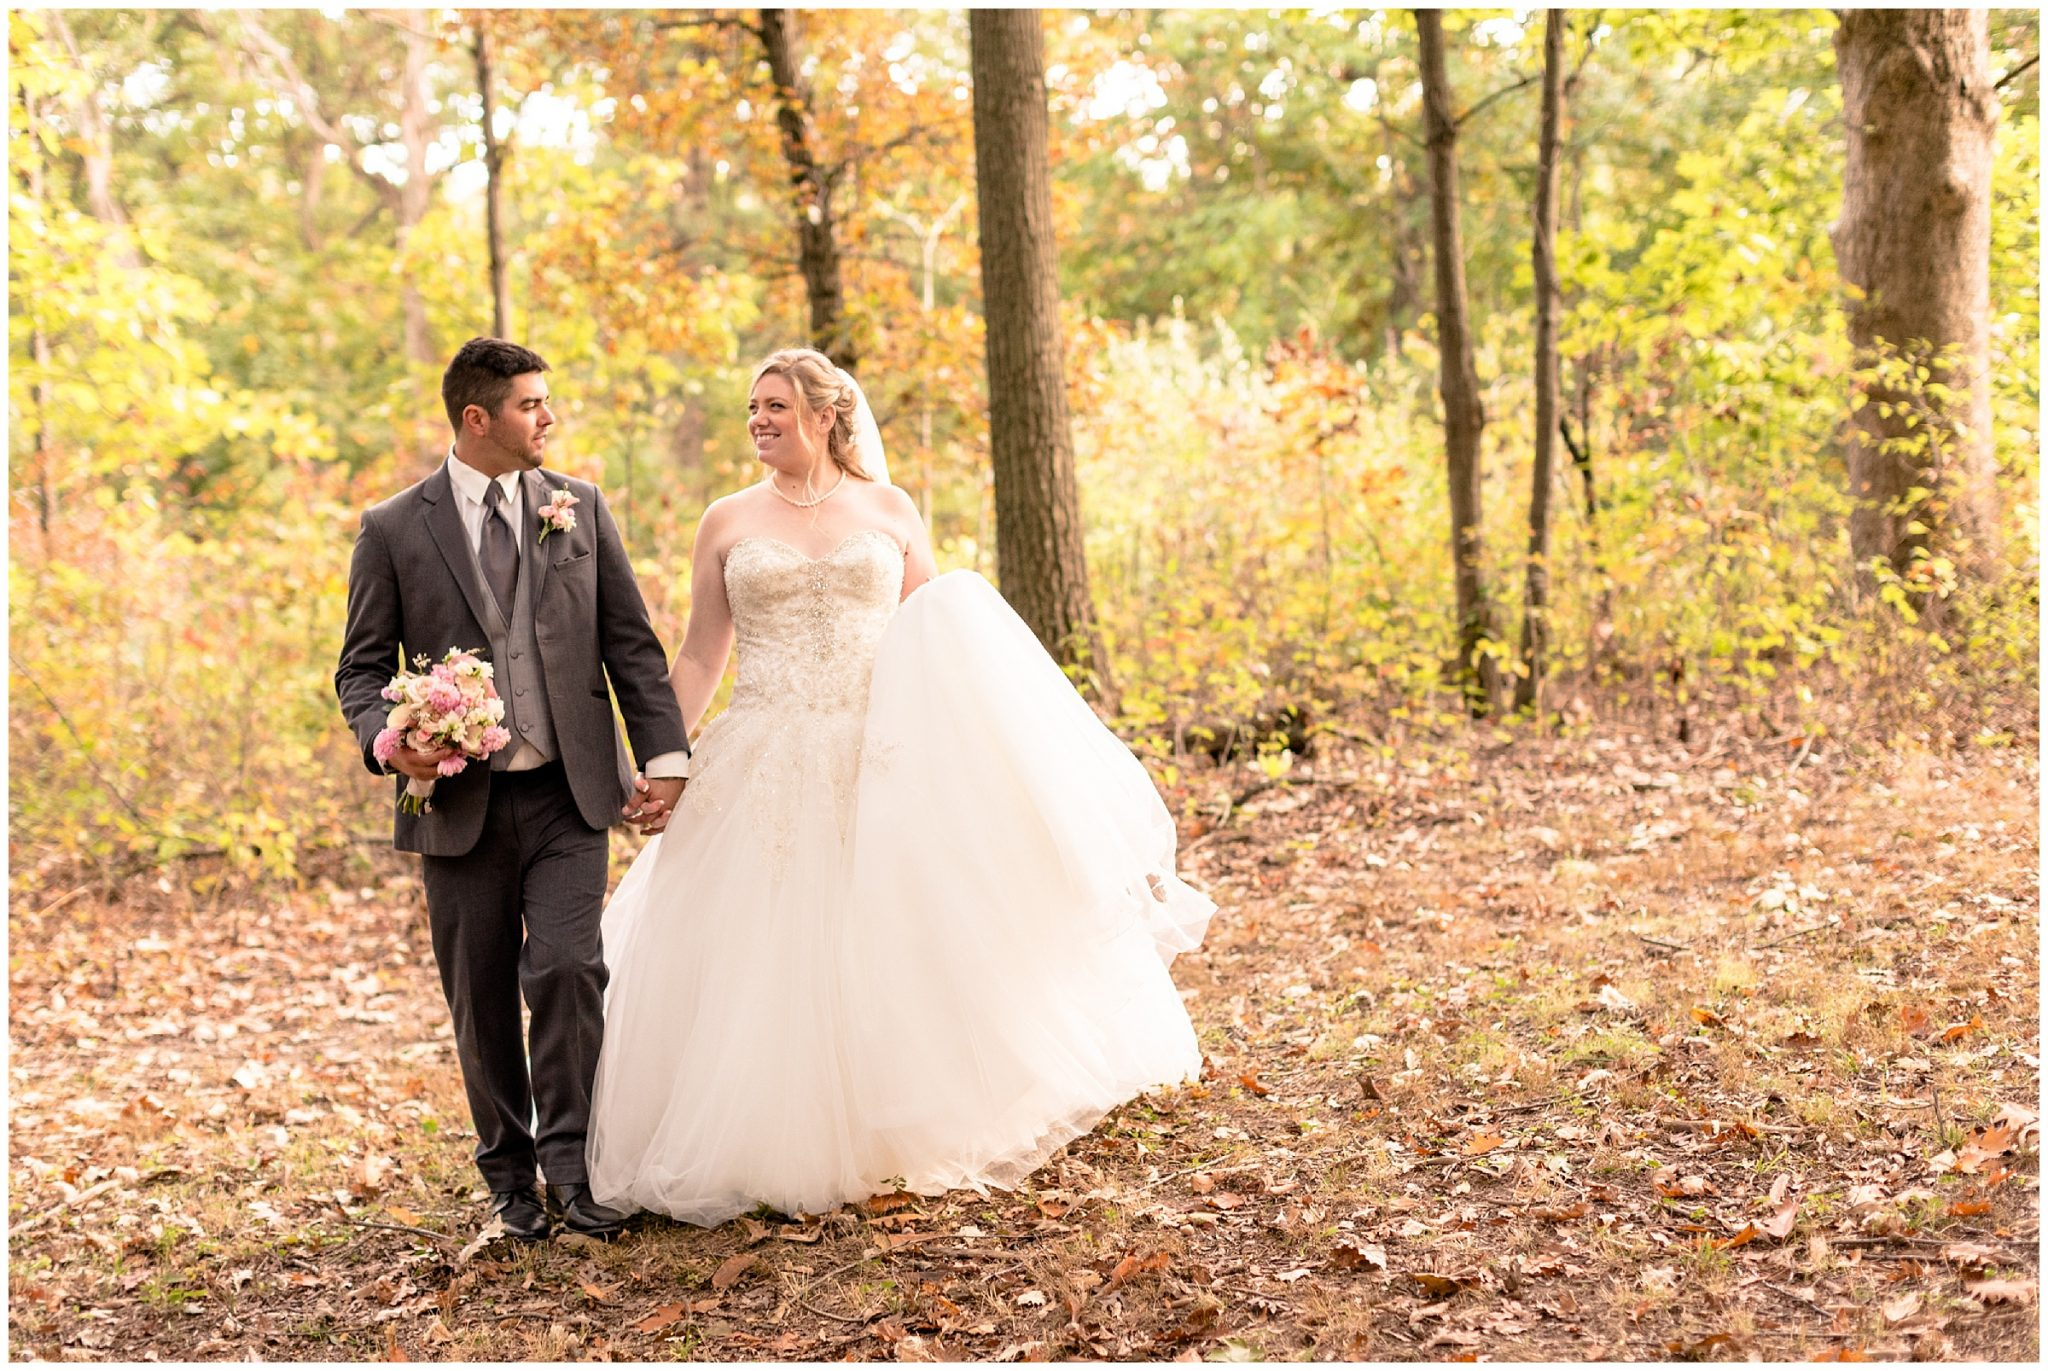 A Handmade Wedding in the Woods, Crown Point Indiana_0330